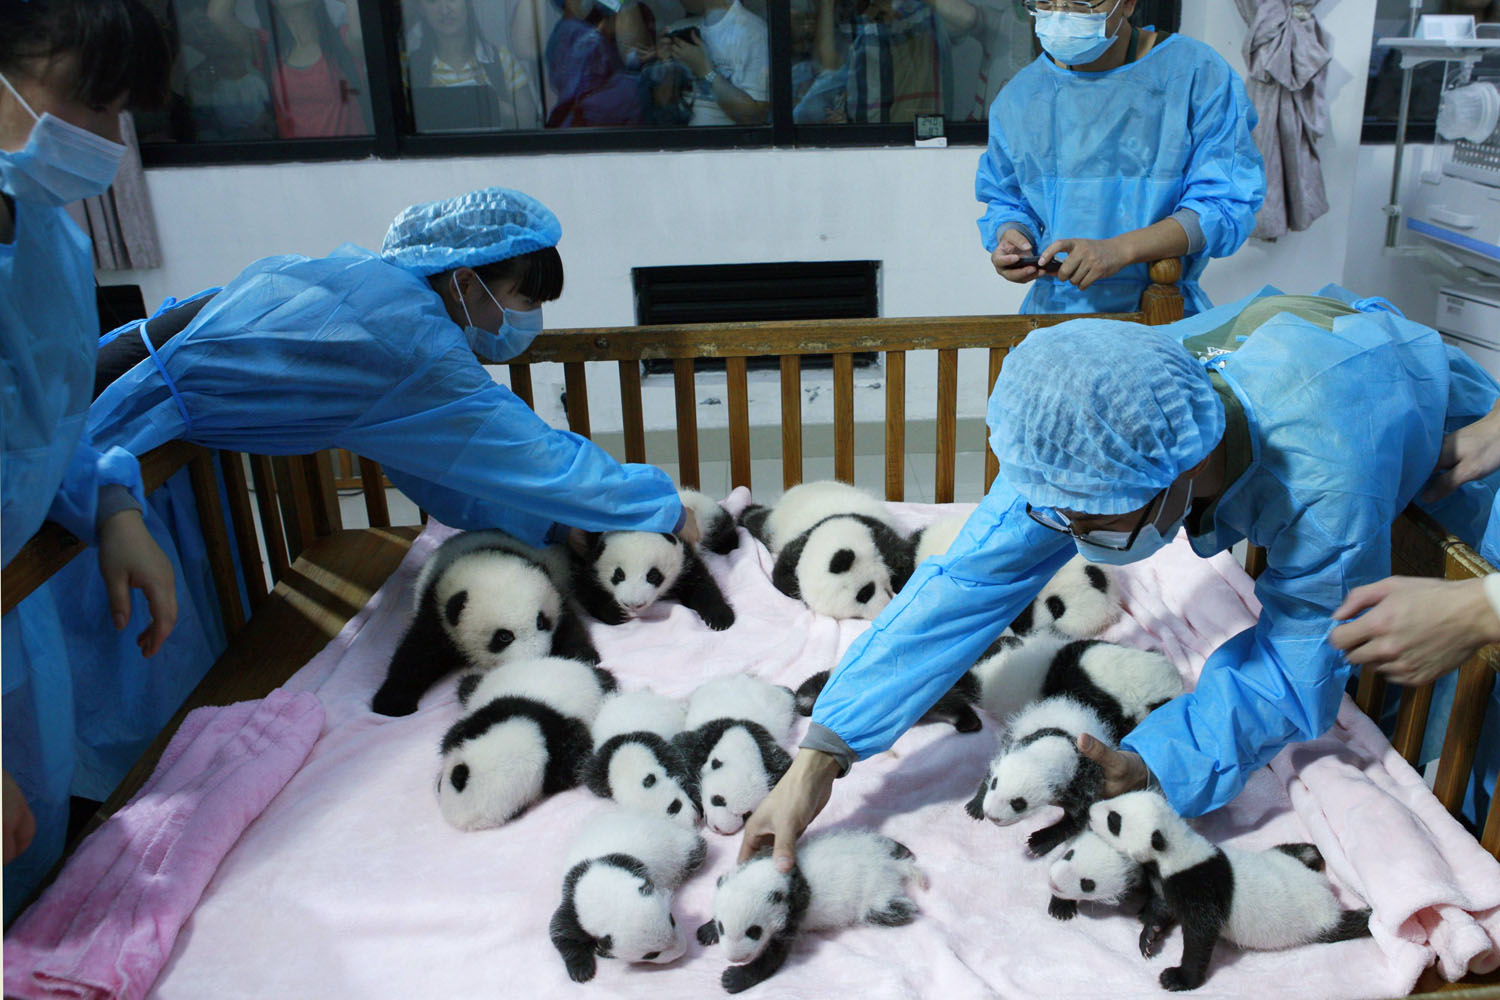 Sept. 23, 2013. Breeders take care of giant panda cubs inside a crib at Chengdu Research Base of Giant Panda Breeding in Chengdu, Sichuan province, China.